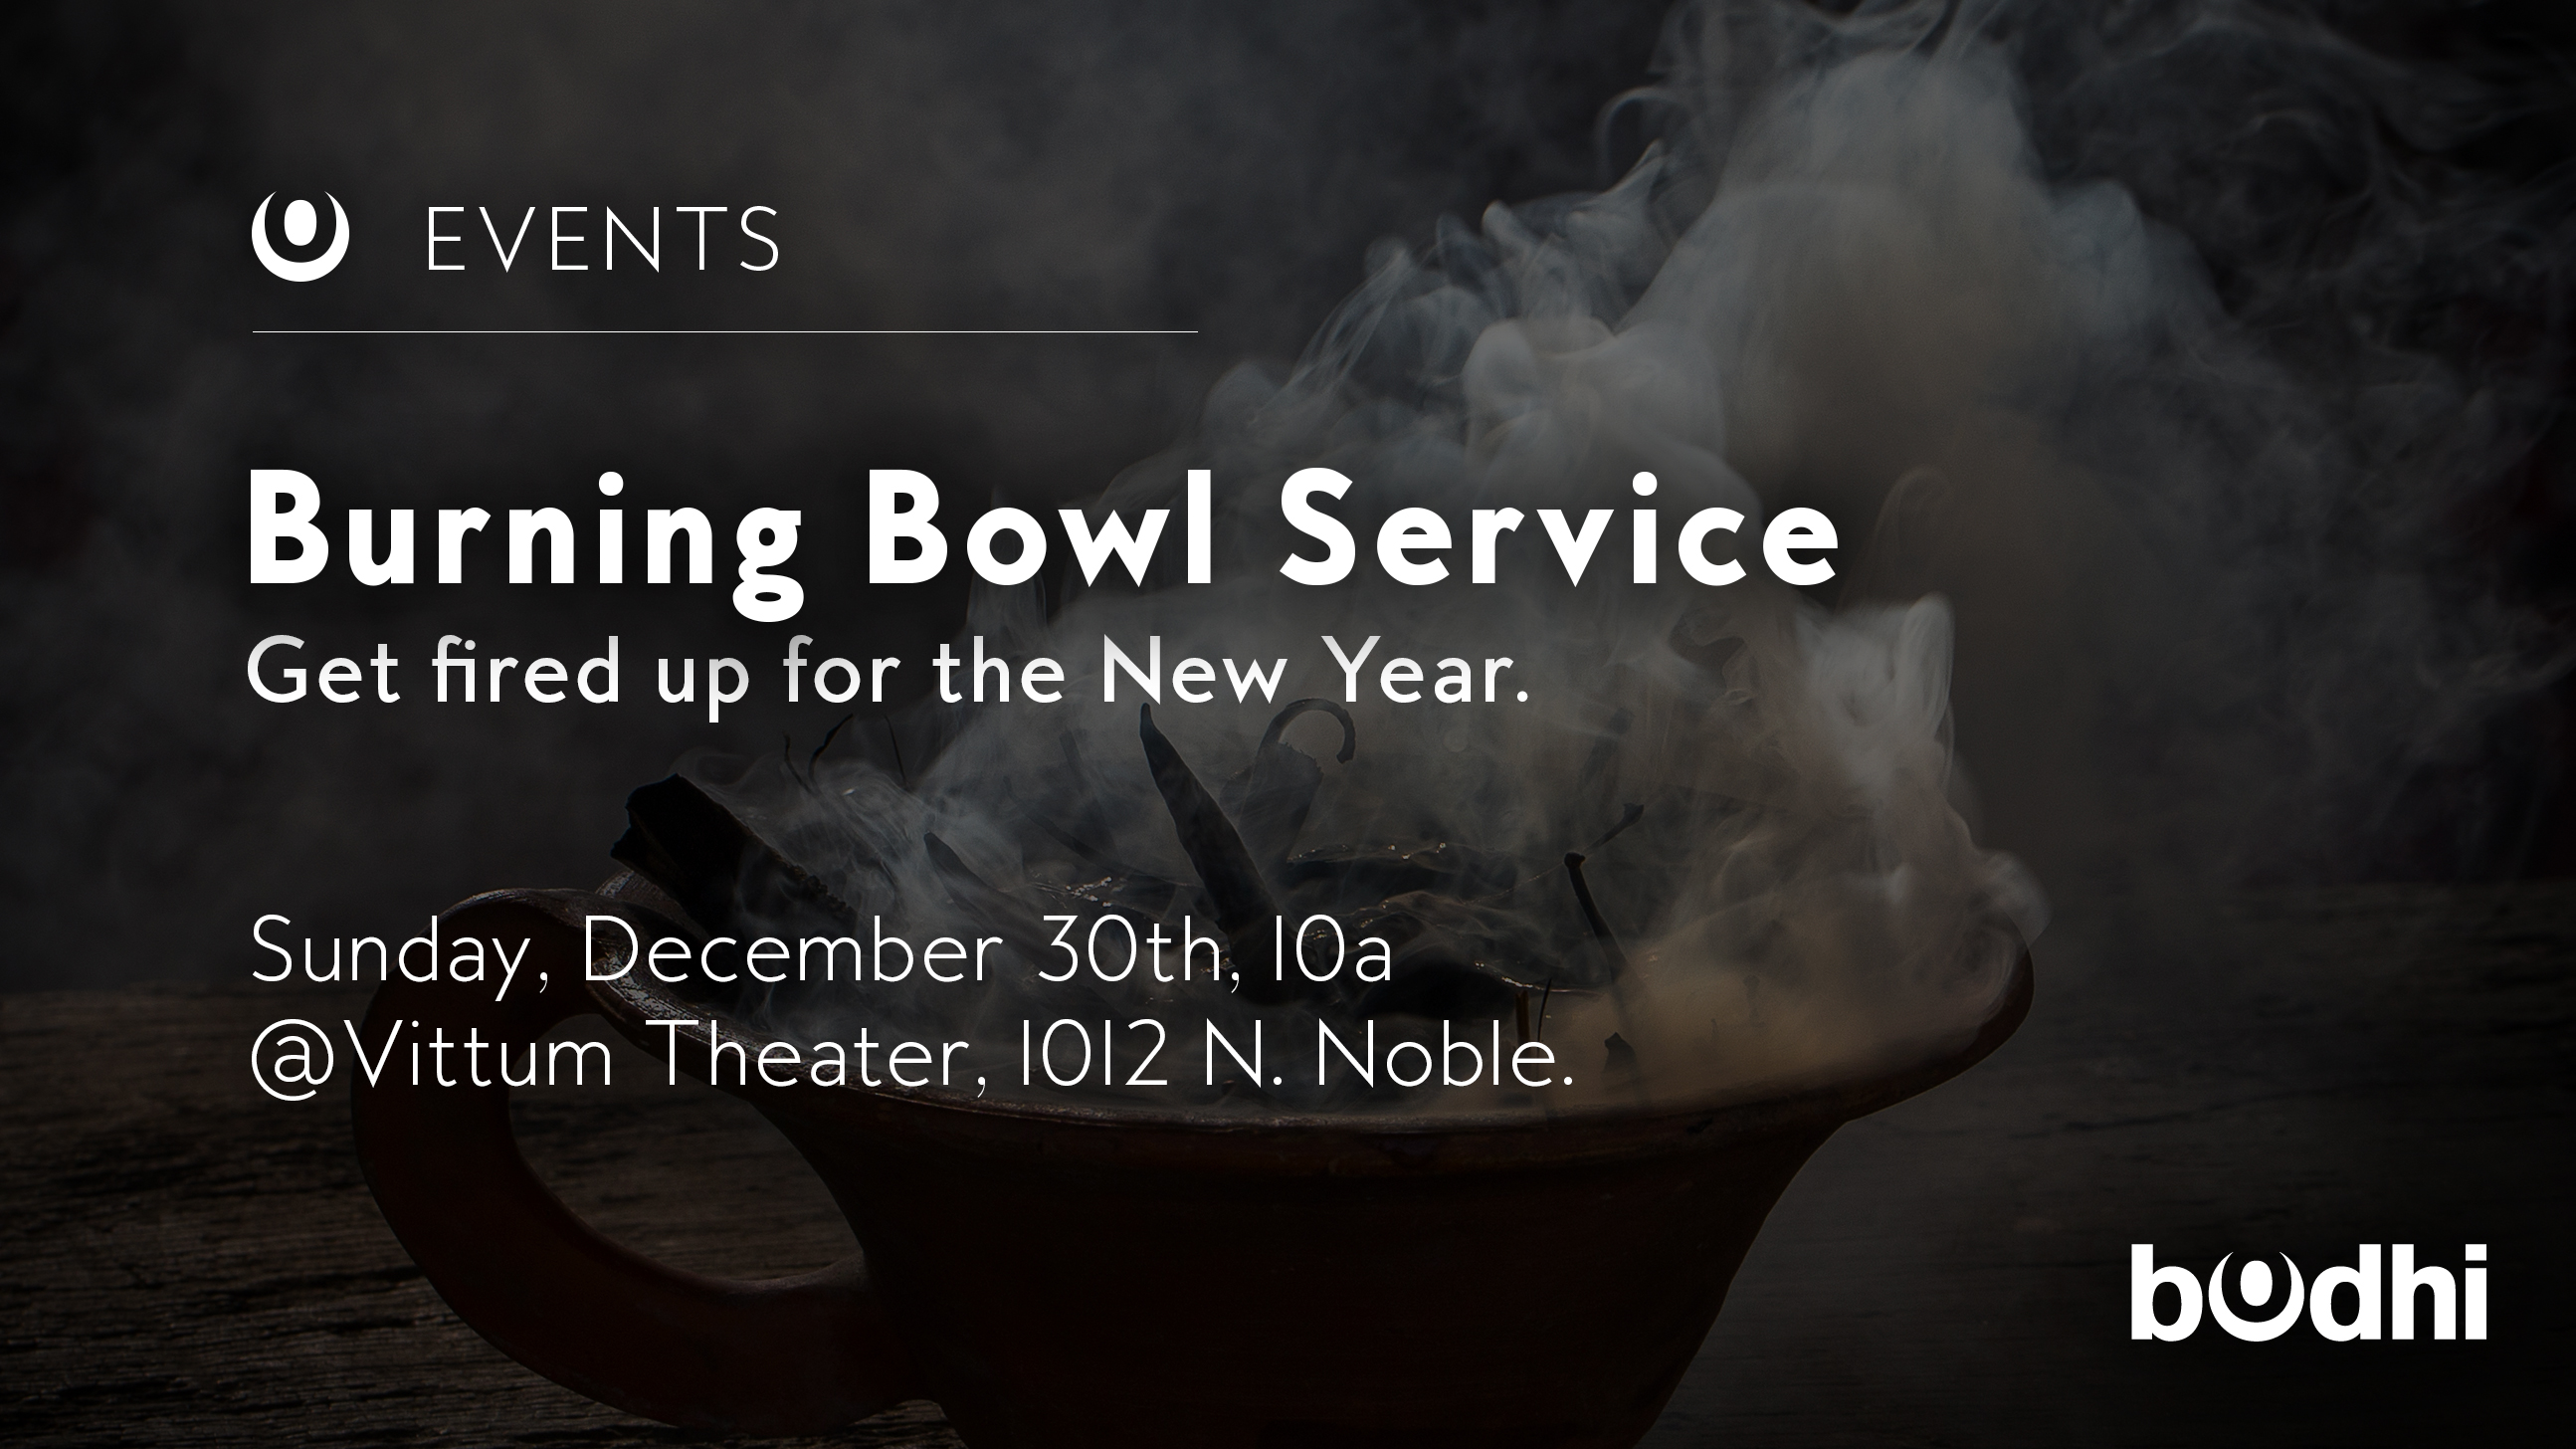 make 2019 a truly new year for you on sunday december 30th join us for our annual year end service where we burn out the old to make space for the